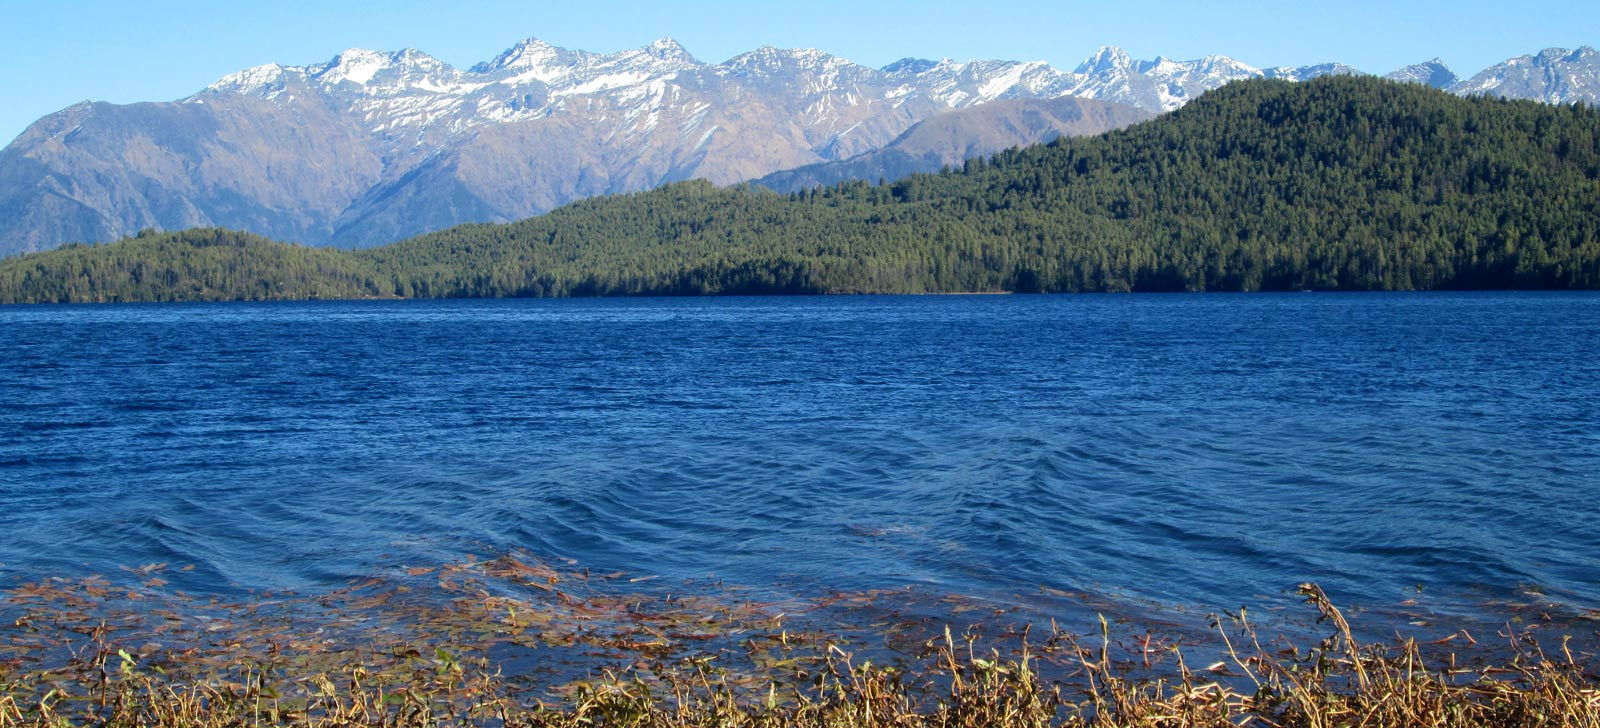 Short Trek to Rara Lake